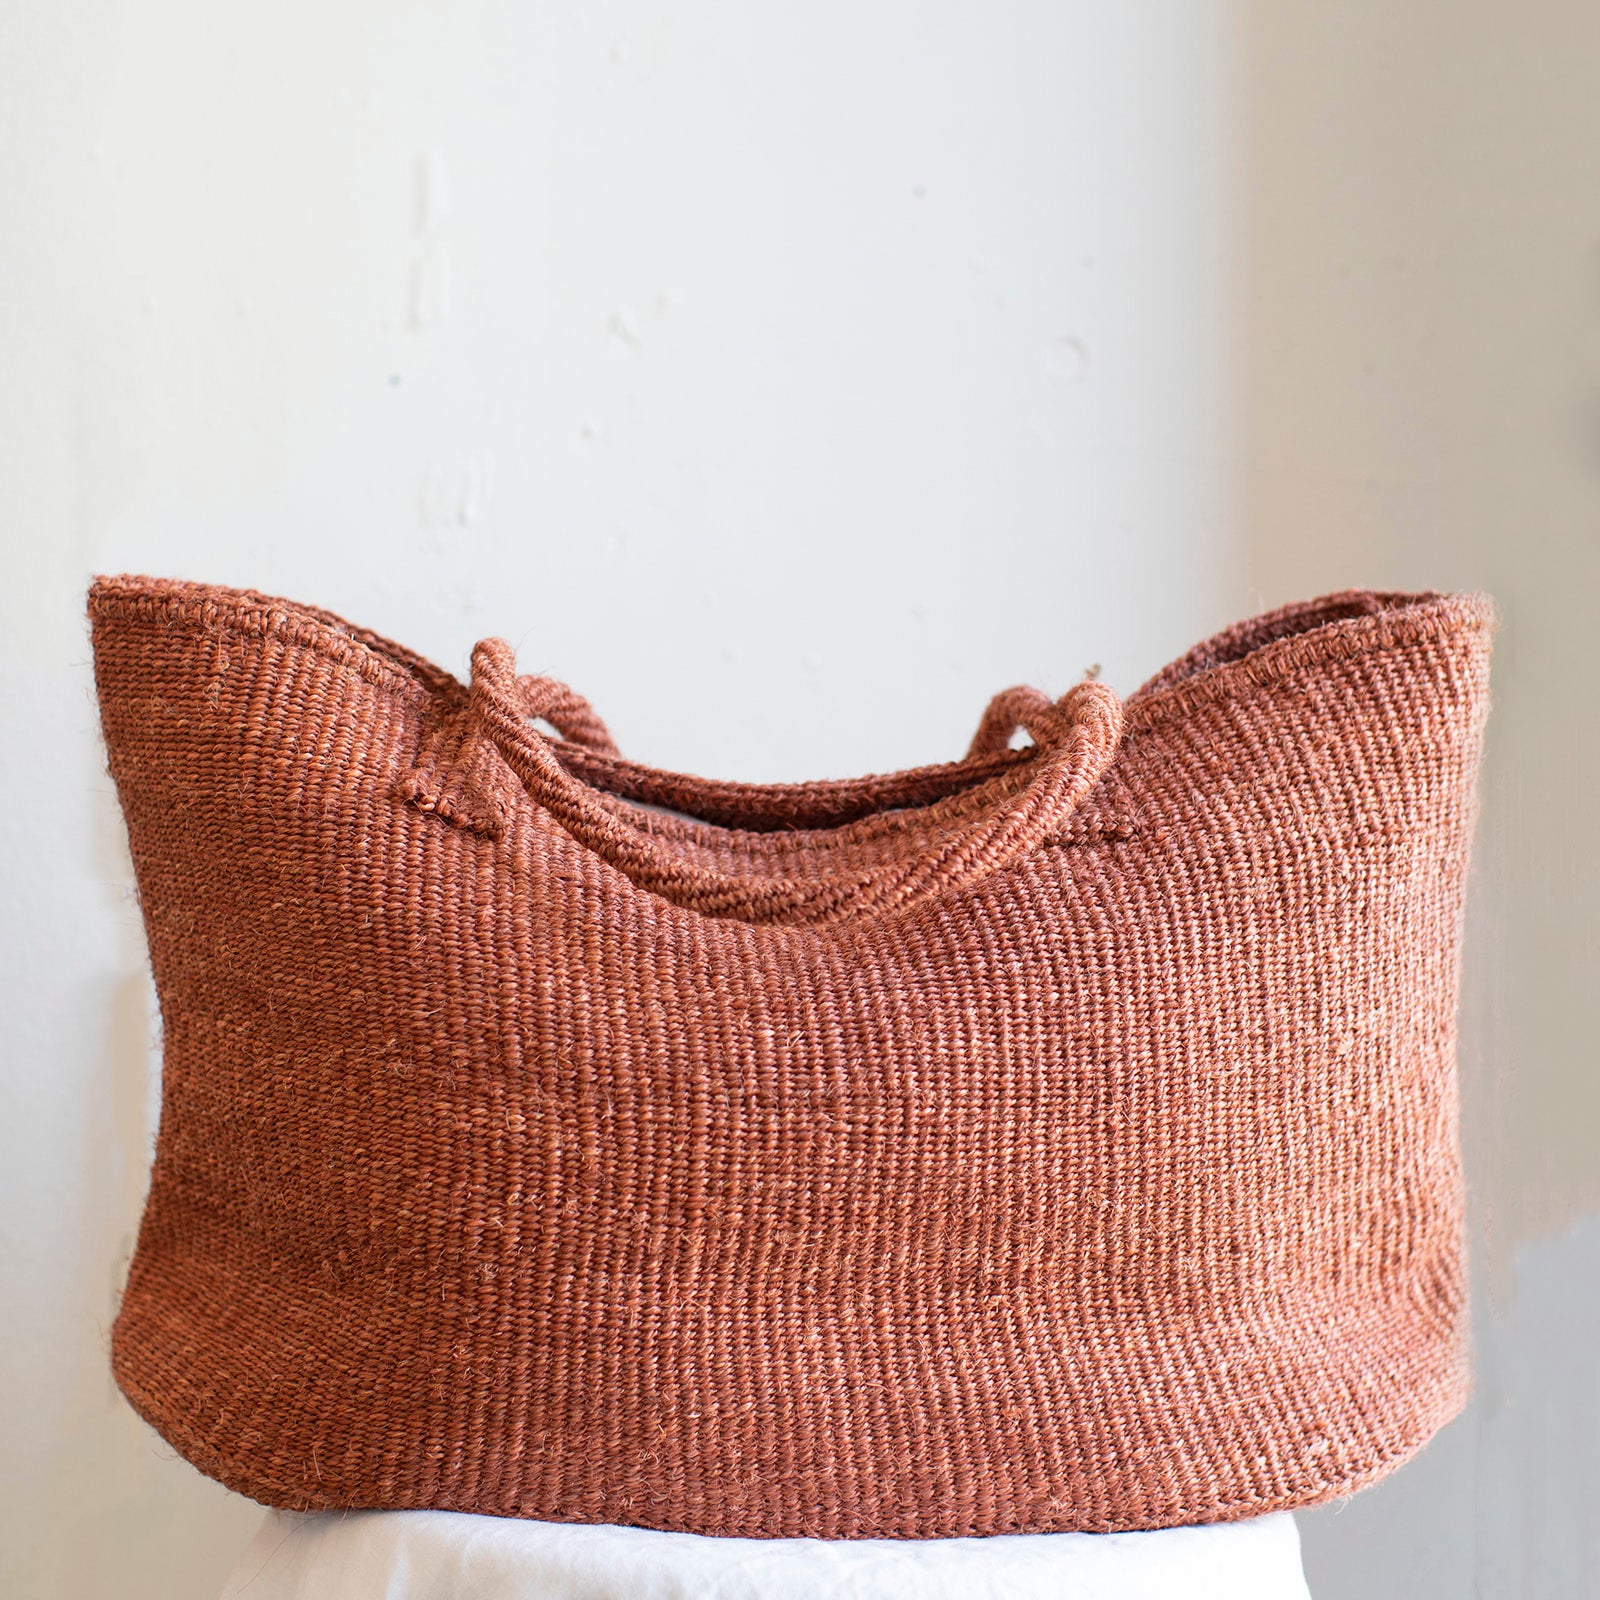 Large sisal tote in canyon ethically handcrafted in Kenya by Amsha